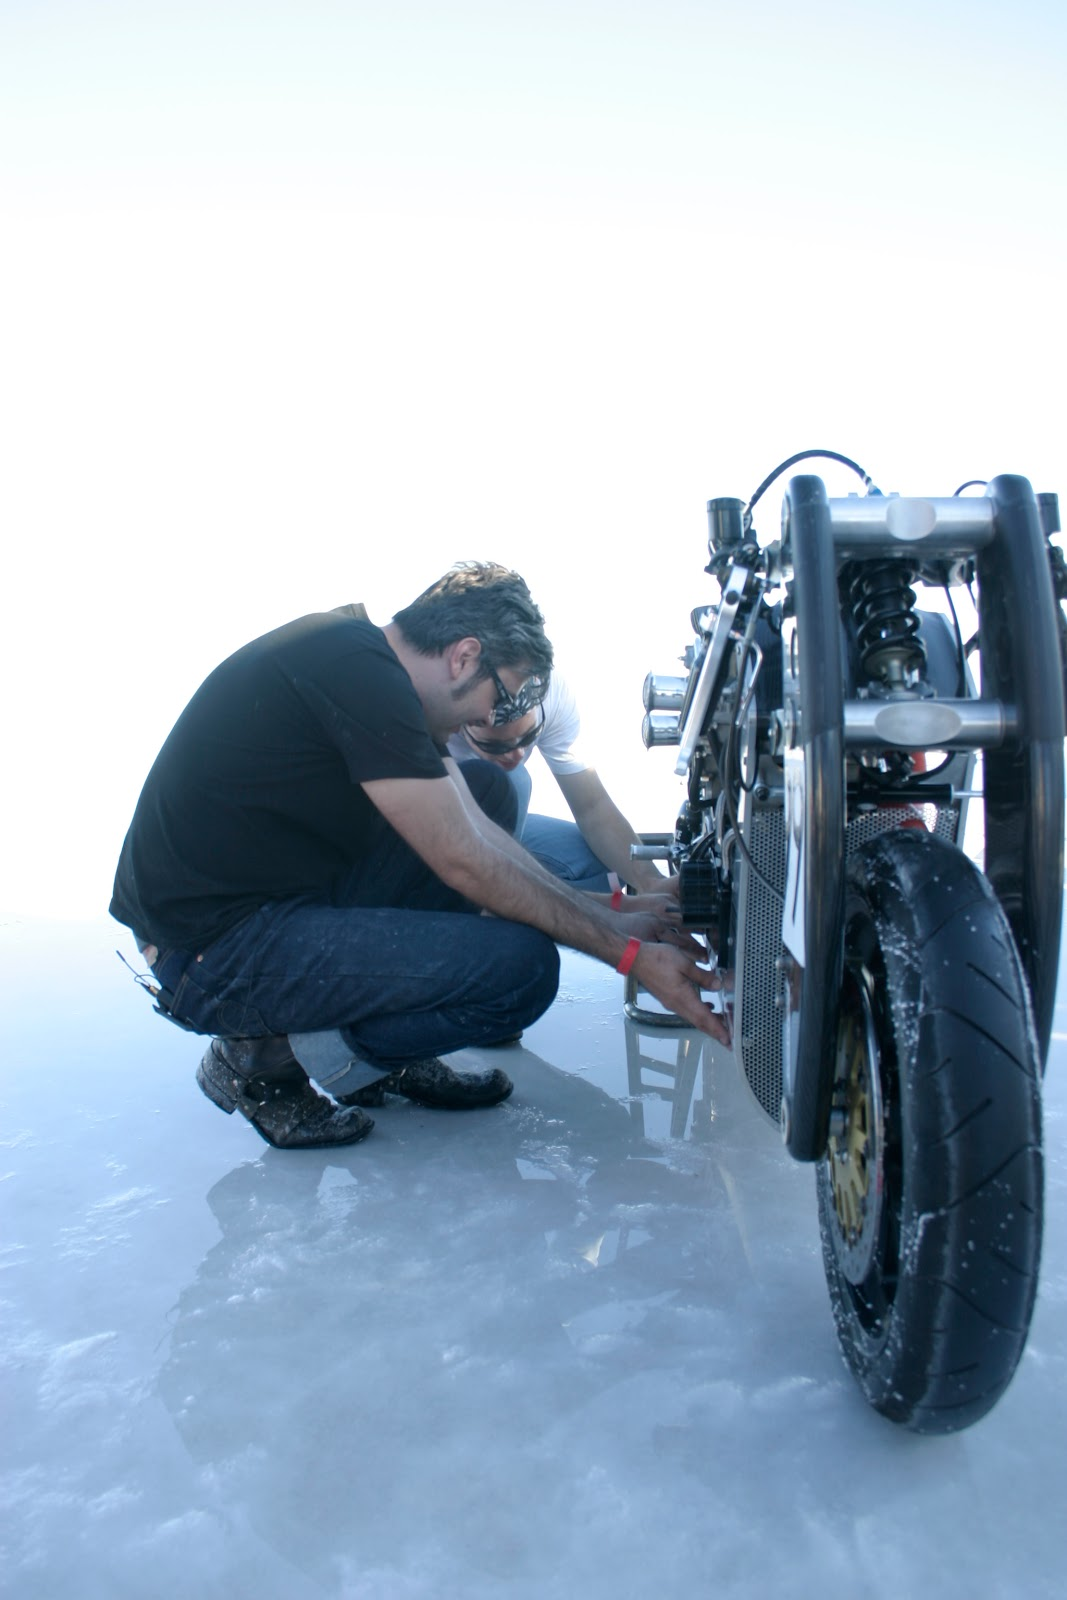 JT Nesbitt working on the Wraith XP-1 at Bonneville